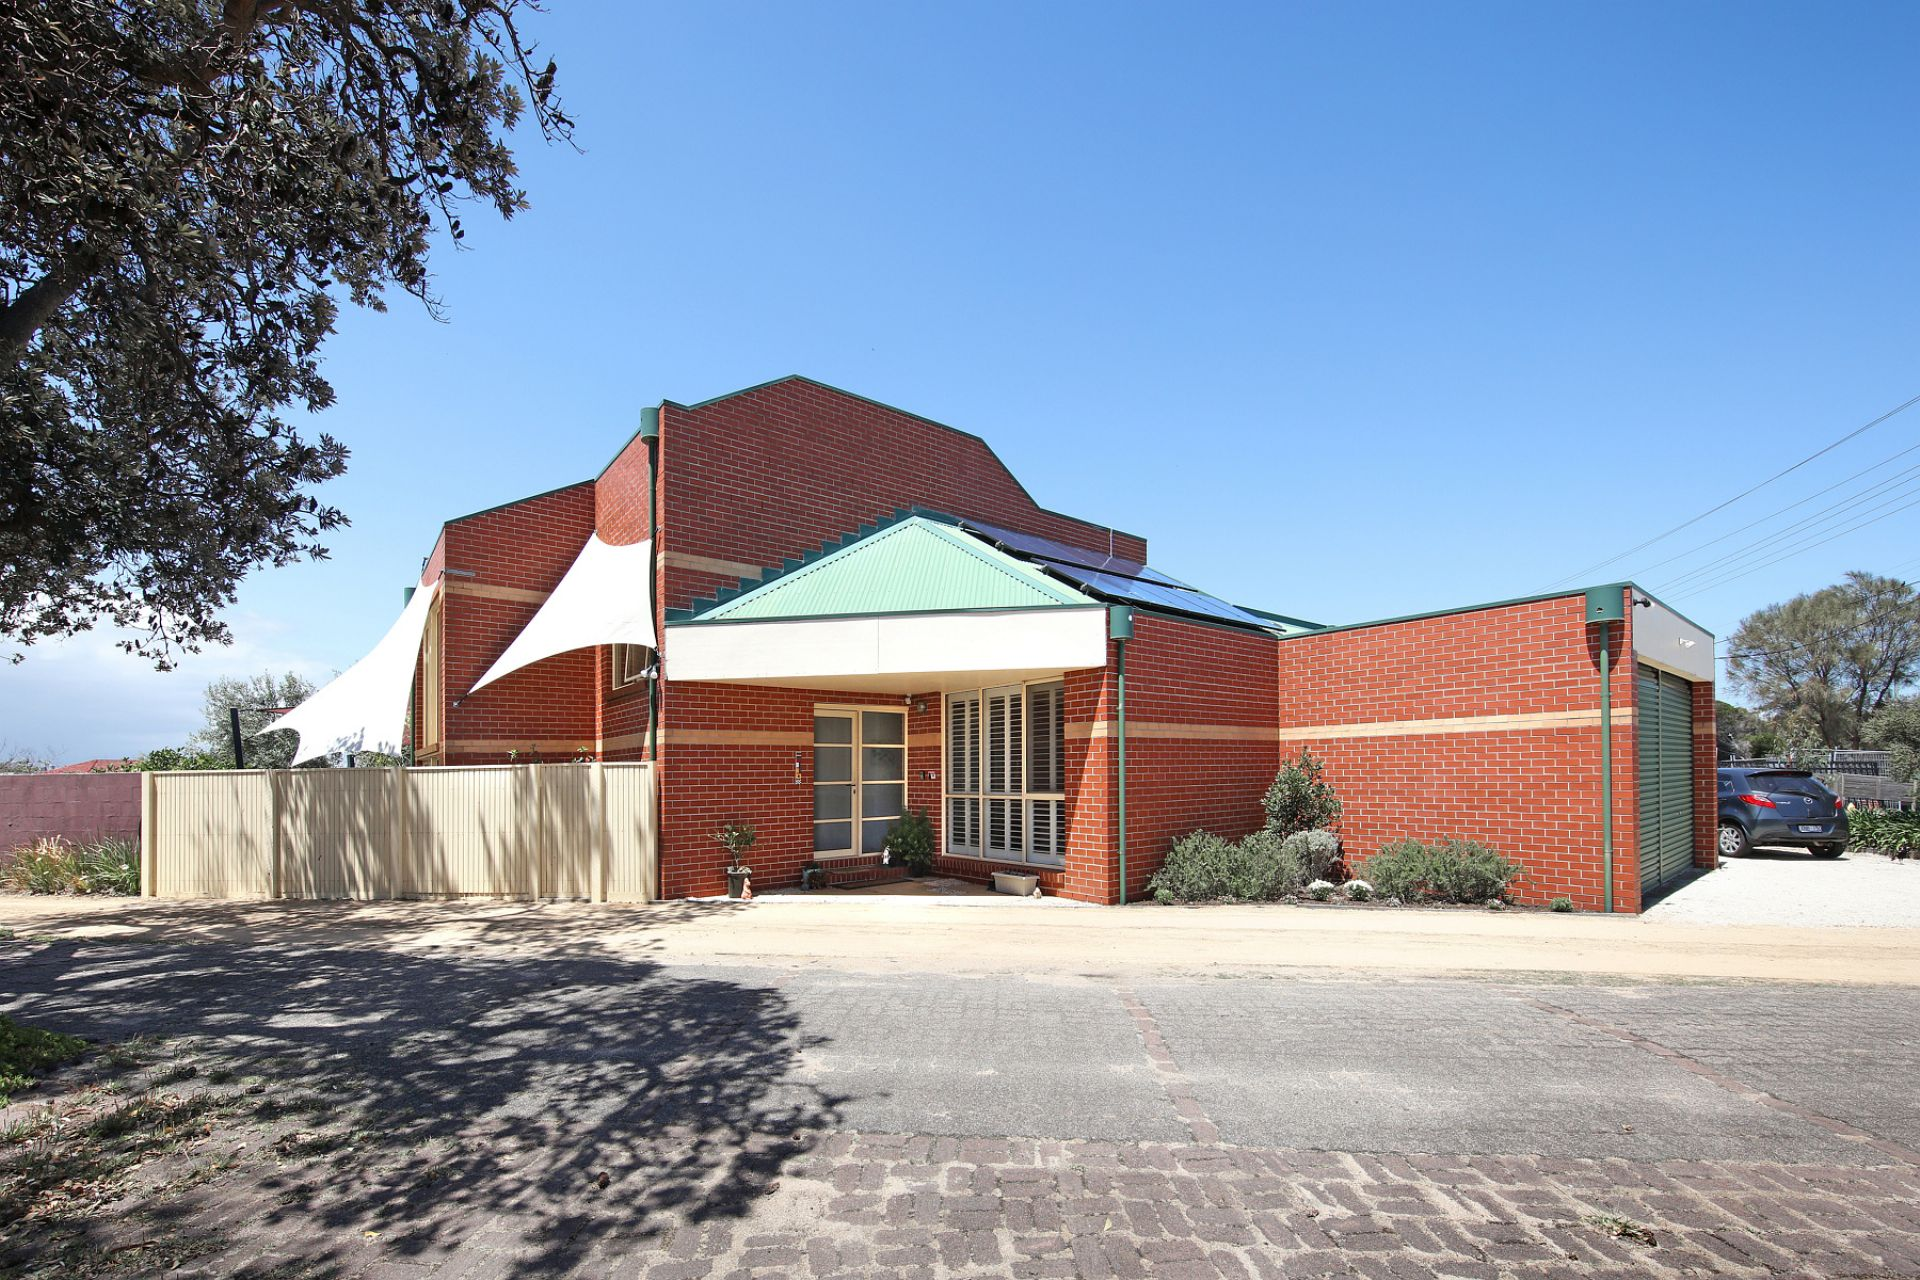 1/443 Station Street, BONBEACH, VIC, 3196 - Image